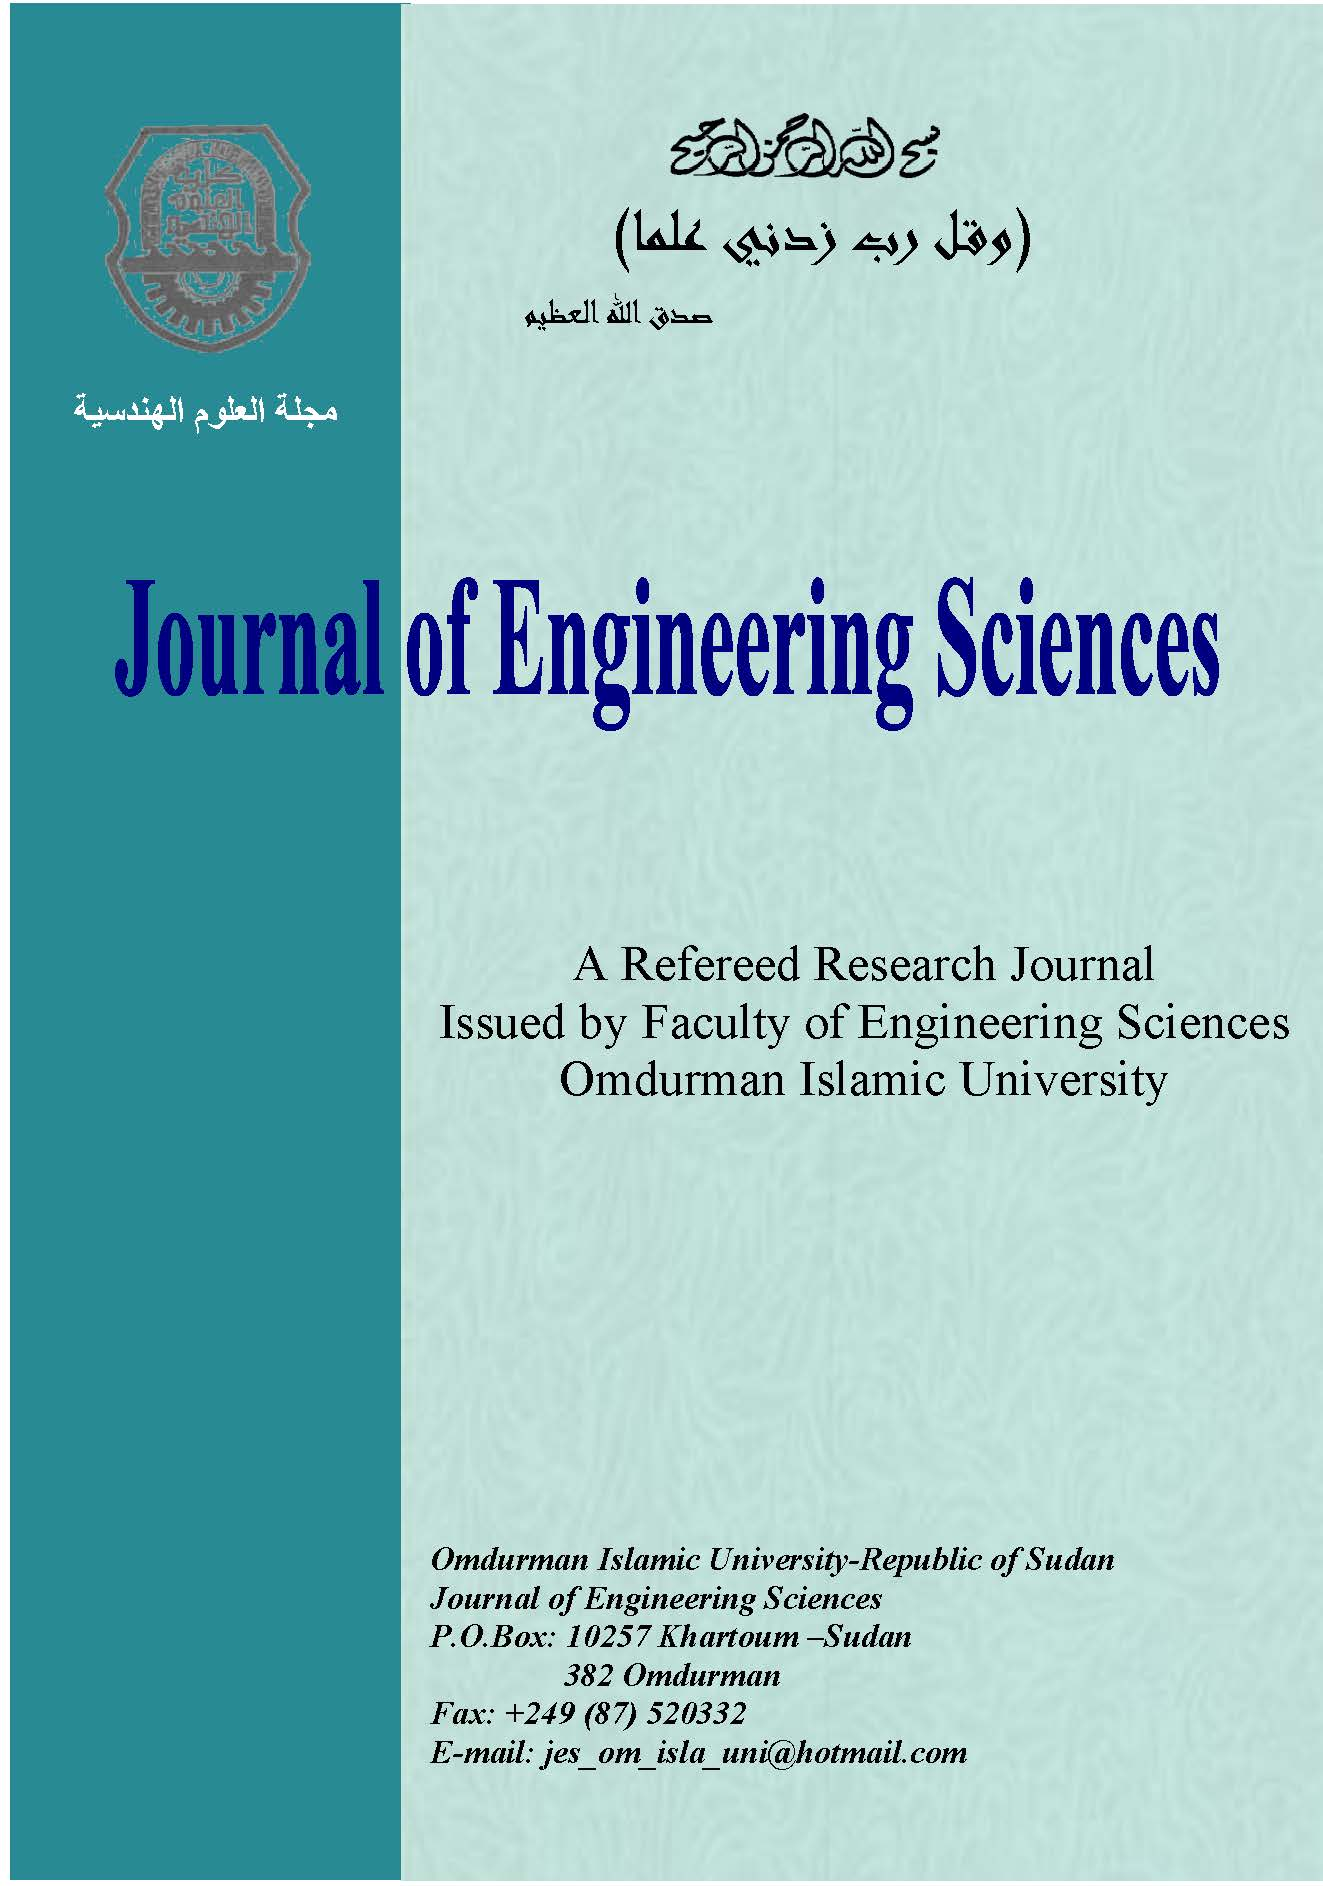 Potentiality For The Application Of Value Engineering In The Construction Industry At The Design Stage Fes Journal Of Engineering Sciences